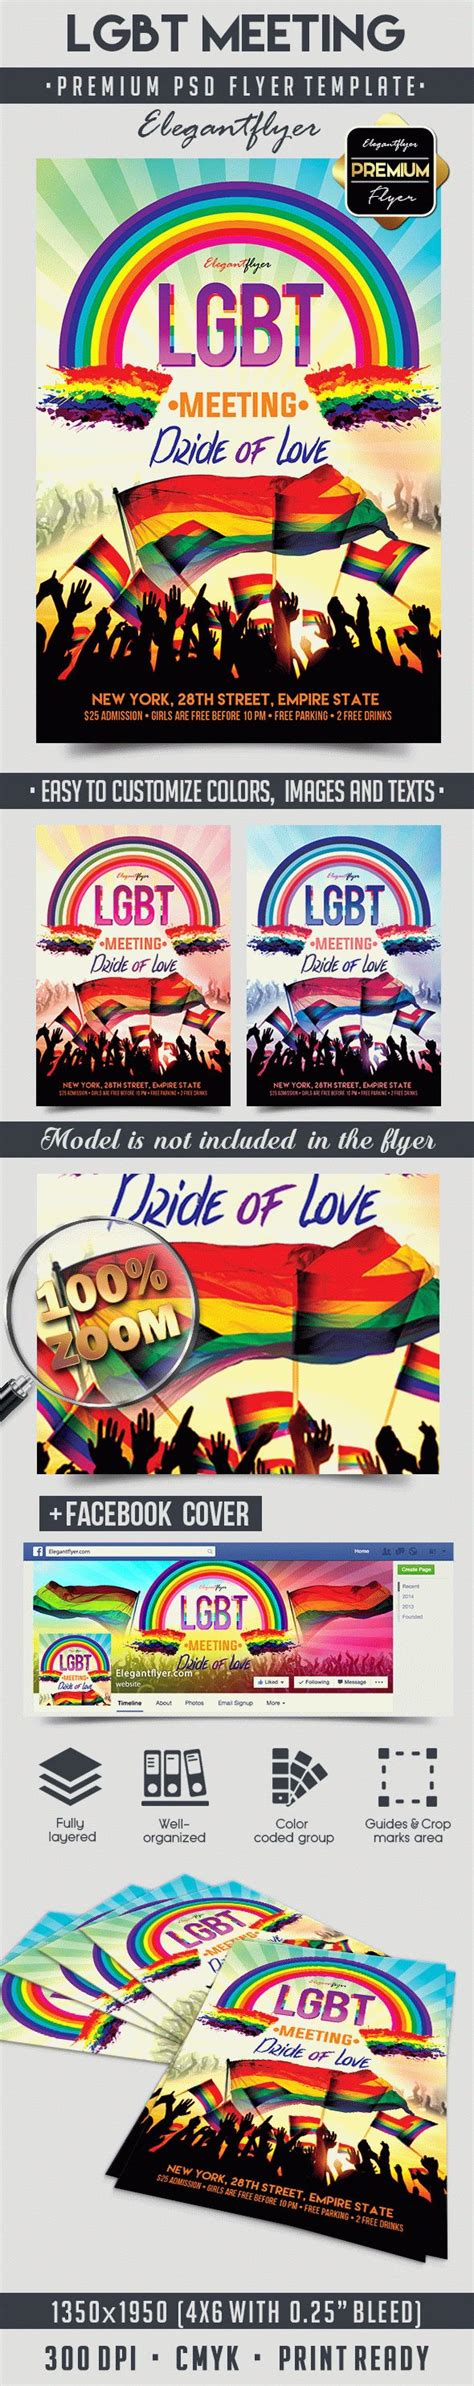 Lgbt Flyer Template lgbt meeting flyer psd template by elegantflyer